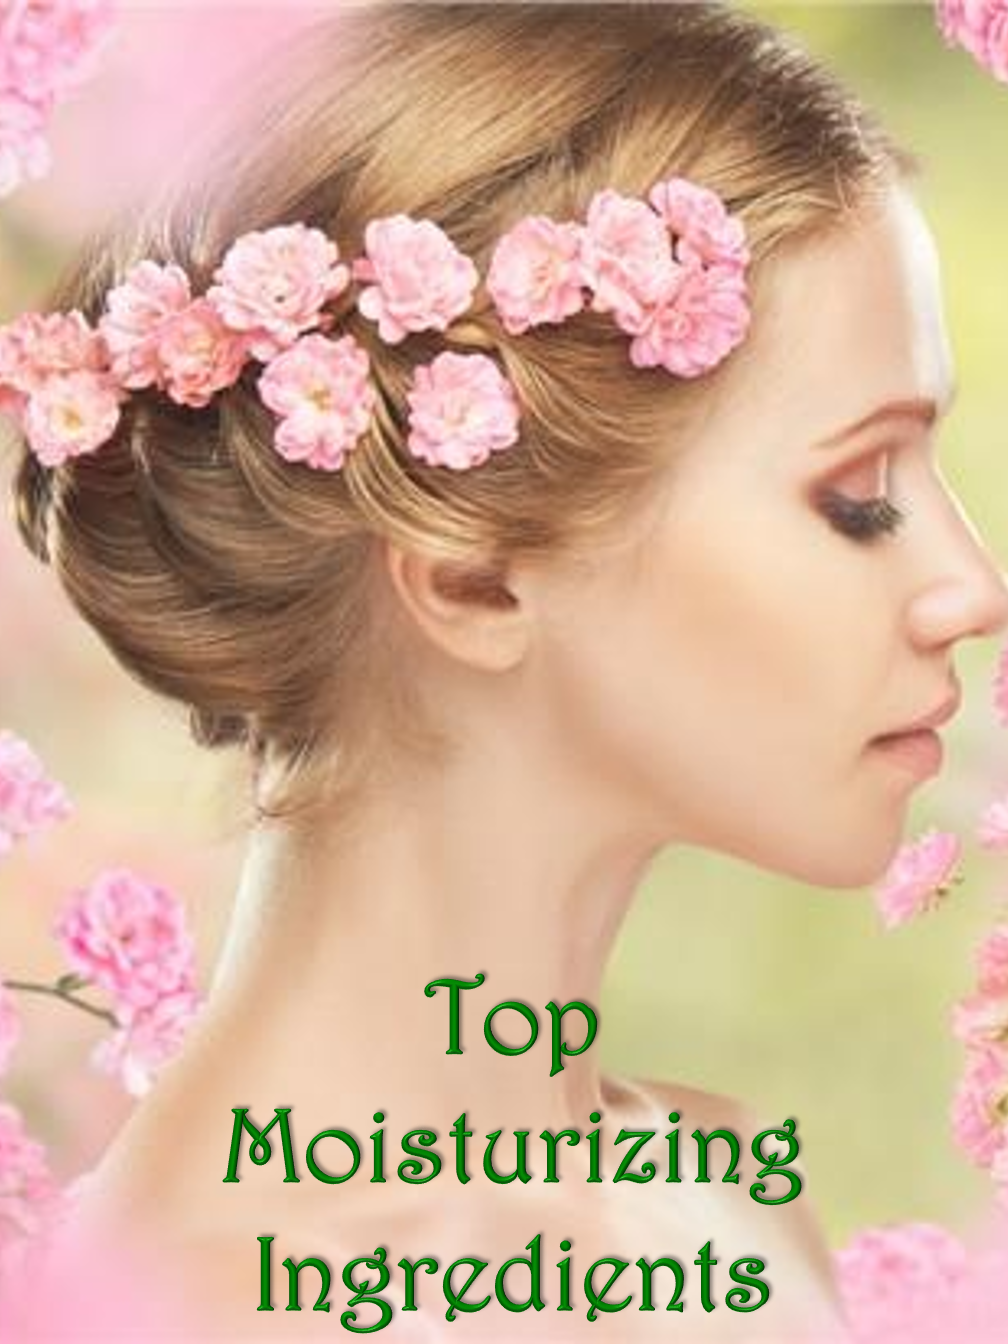 Moisturizing Tips